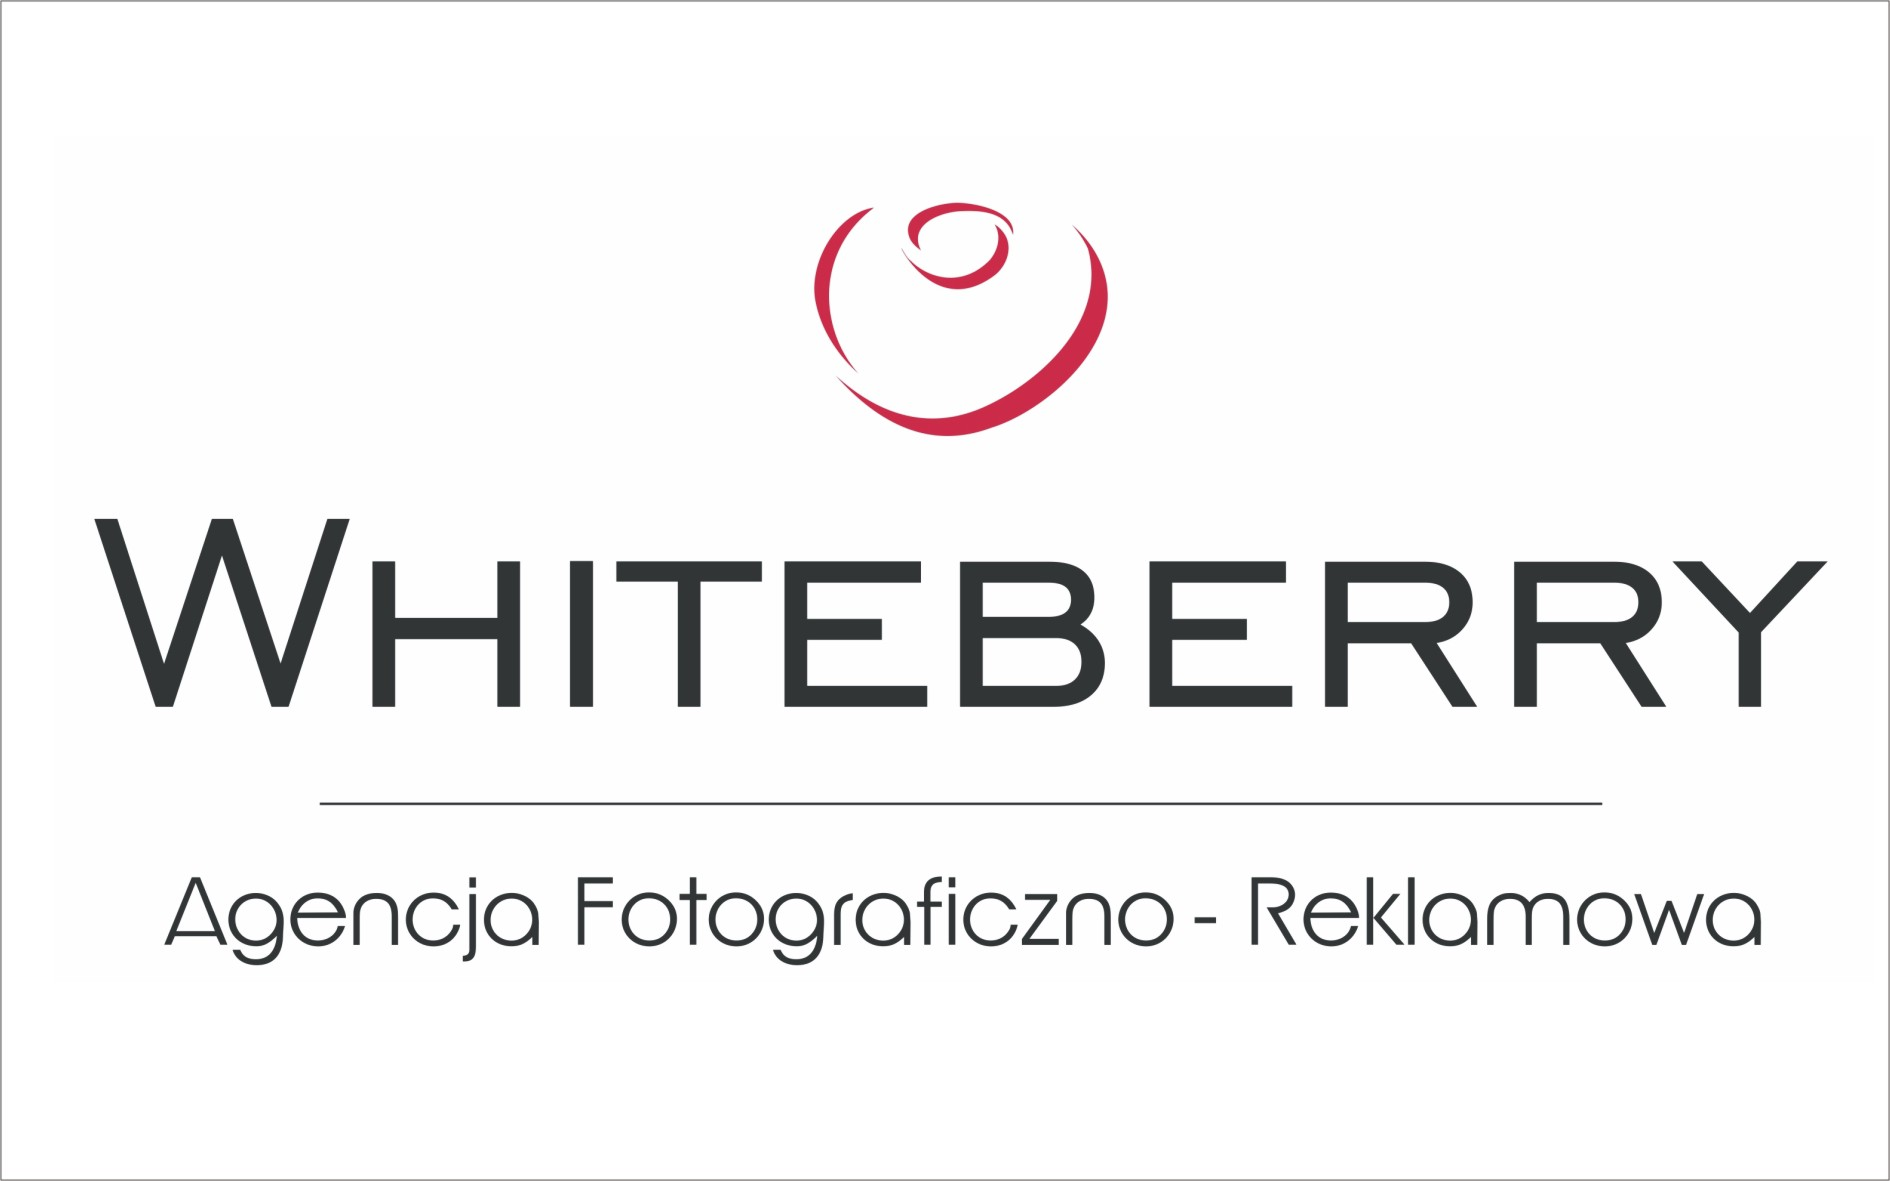 http://www.whiteberry.pl/